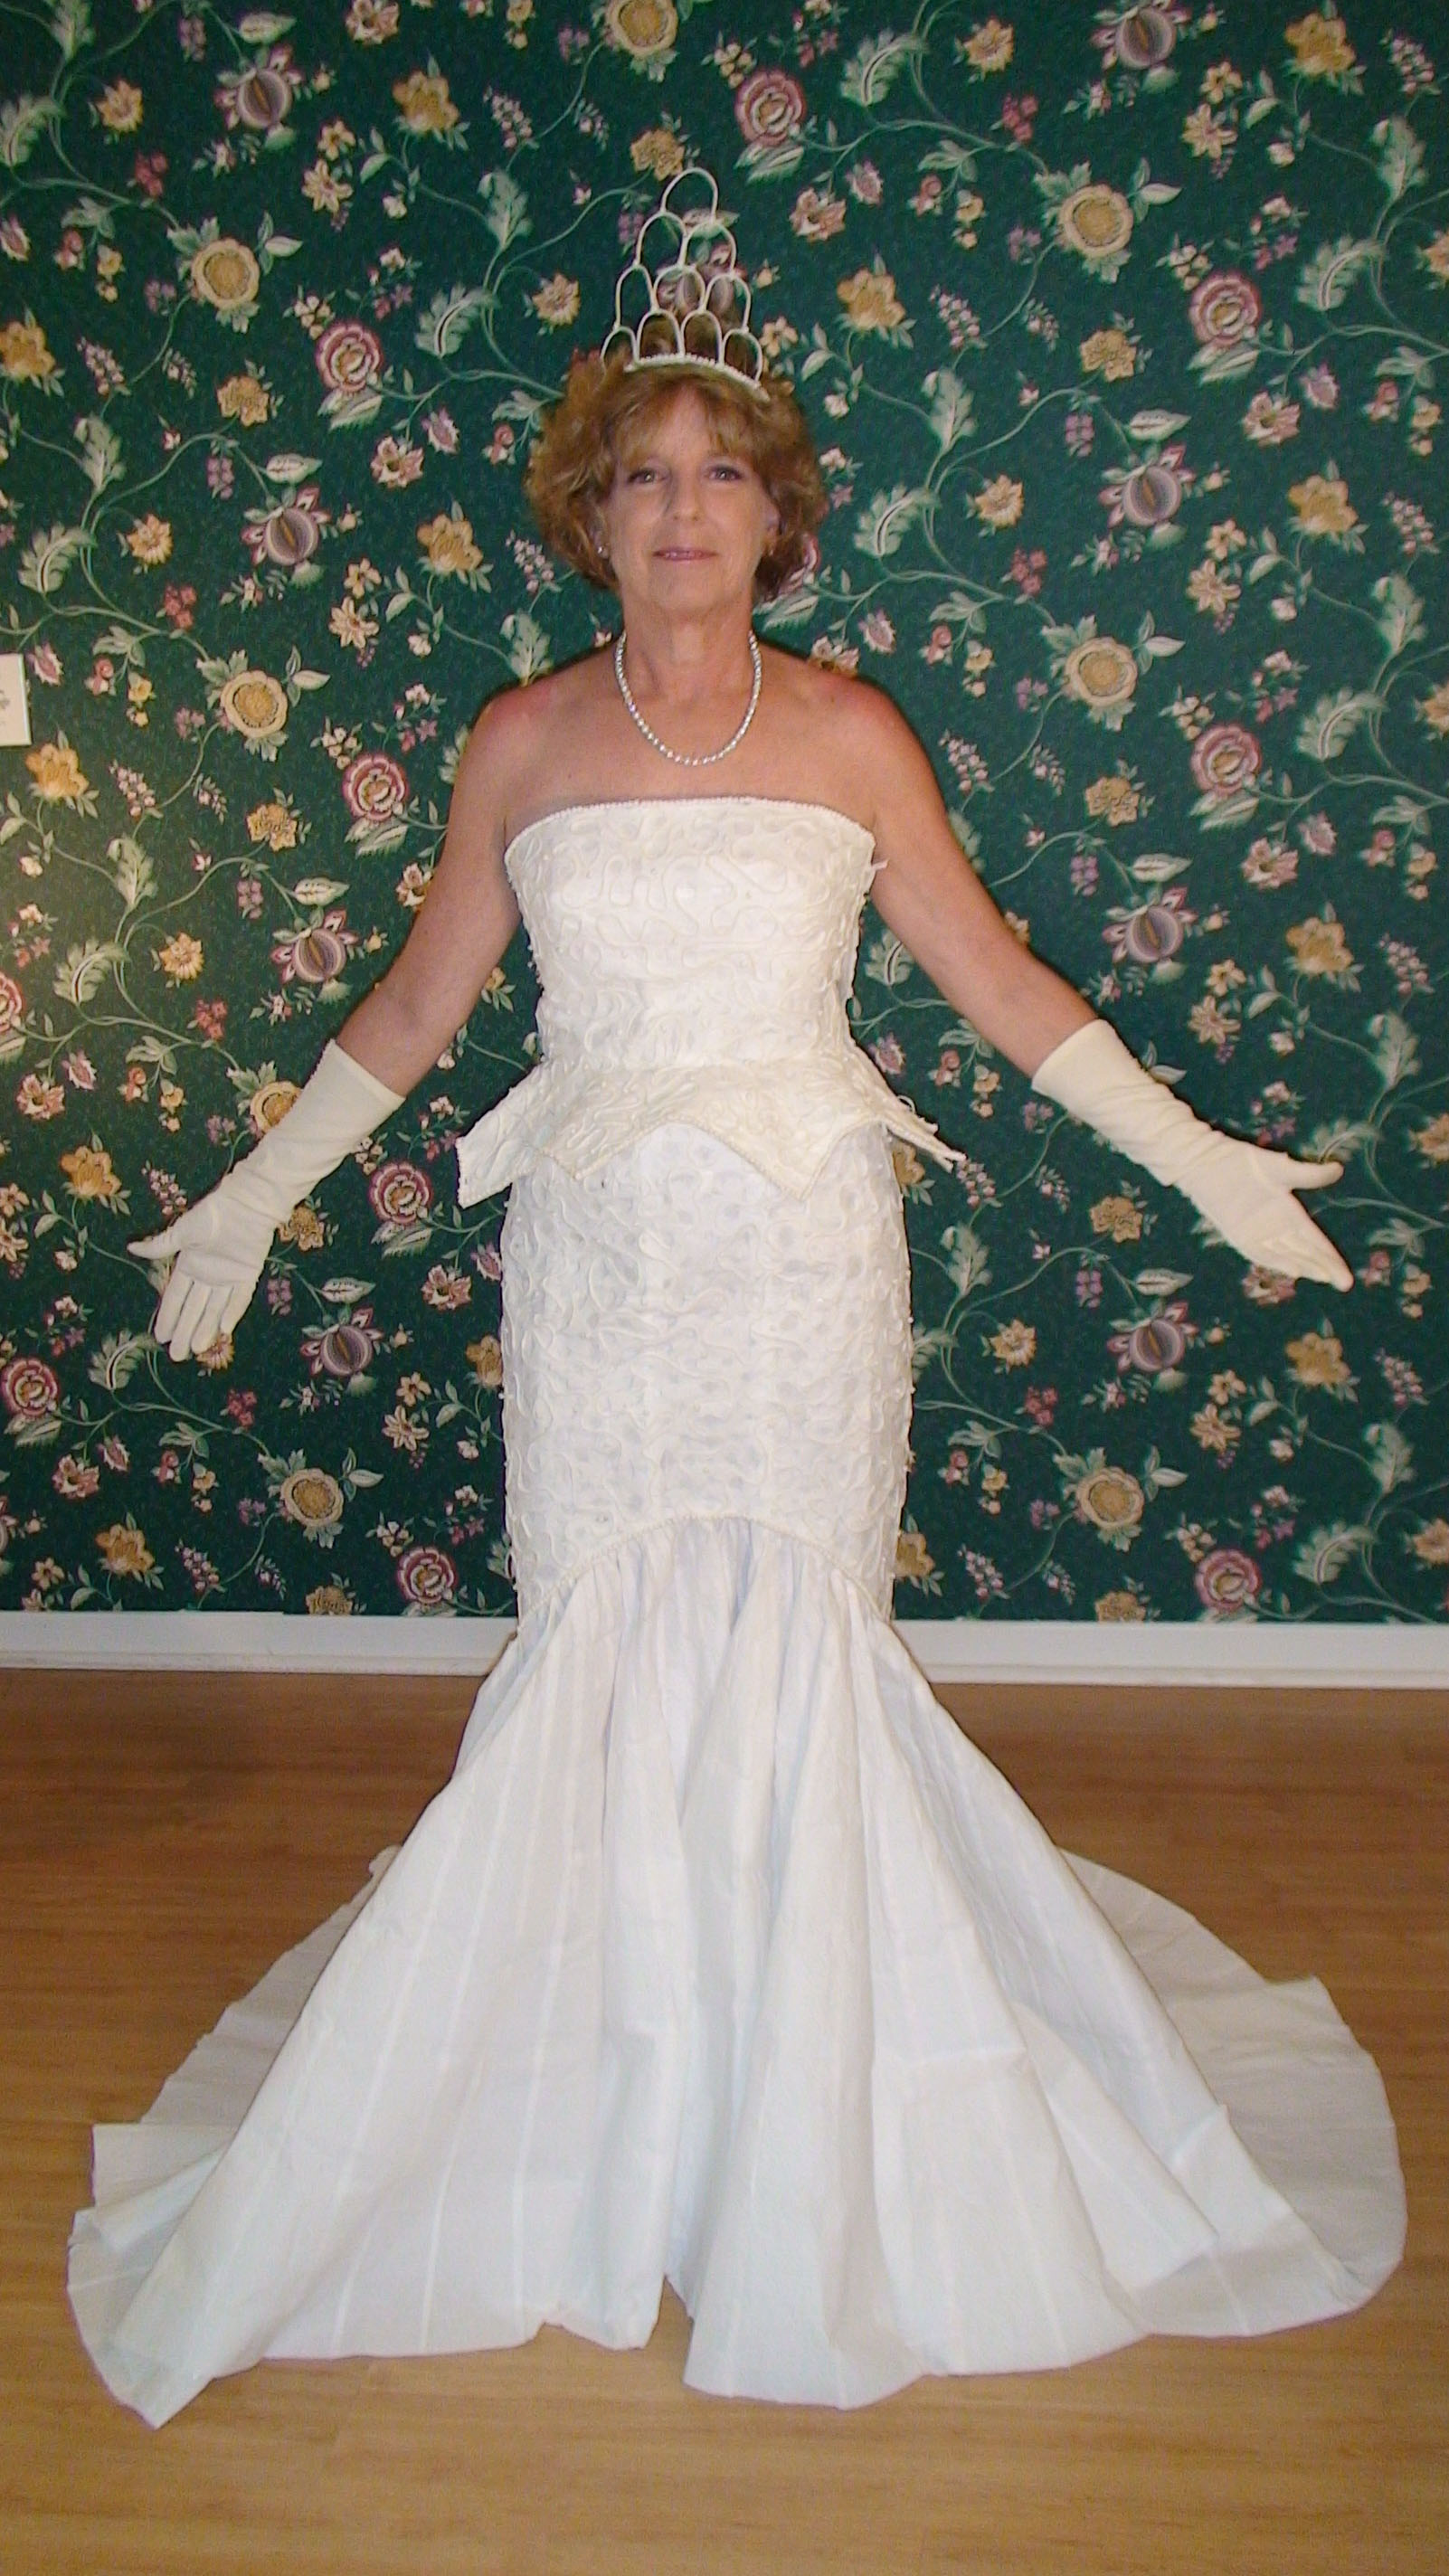 The 2009 Toilet Paper Wedding Dress Contest Presented By Cheap Chic Weddings